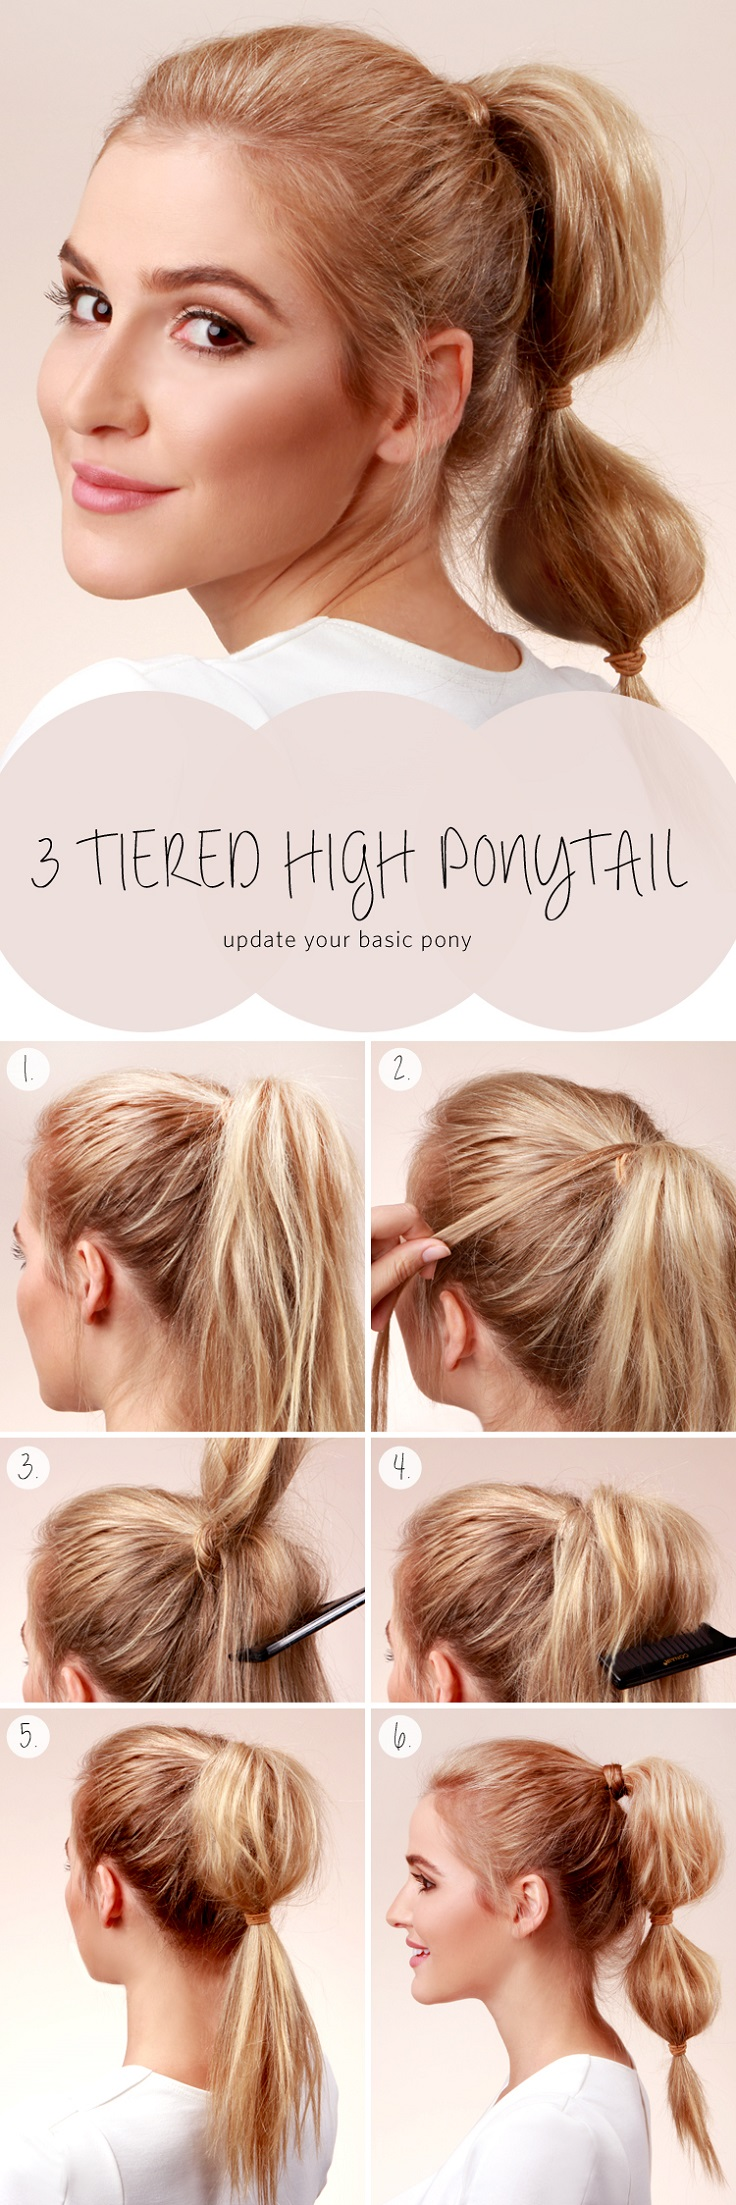 Three-Tiered-High-Ponytail-Tutorial